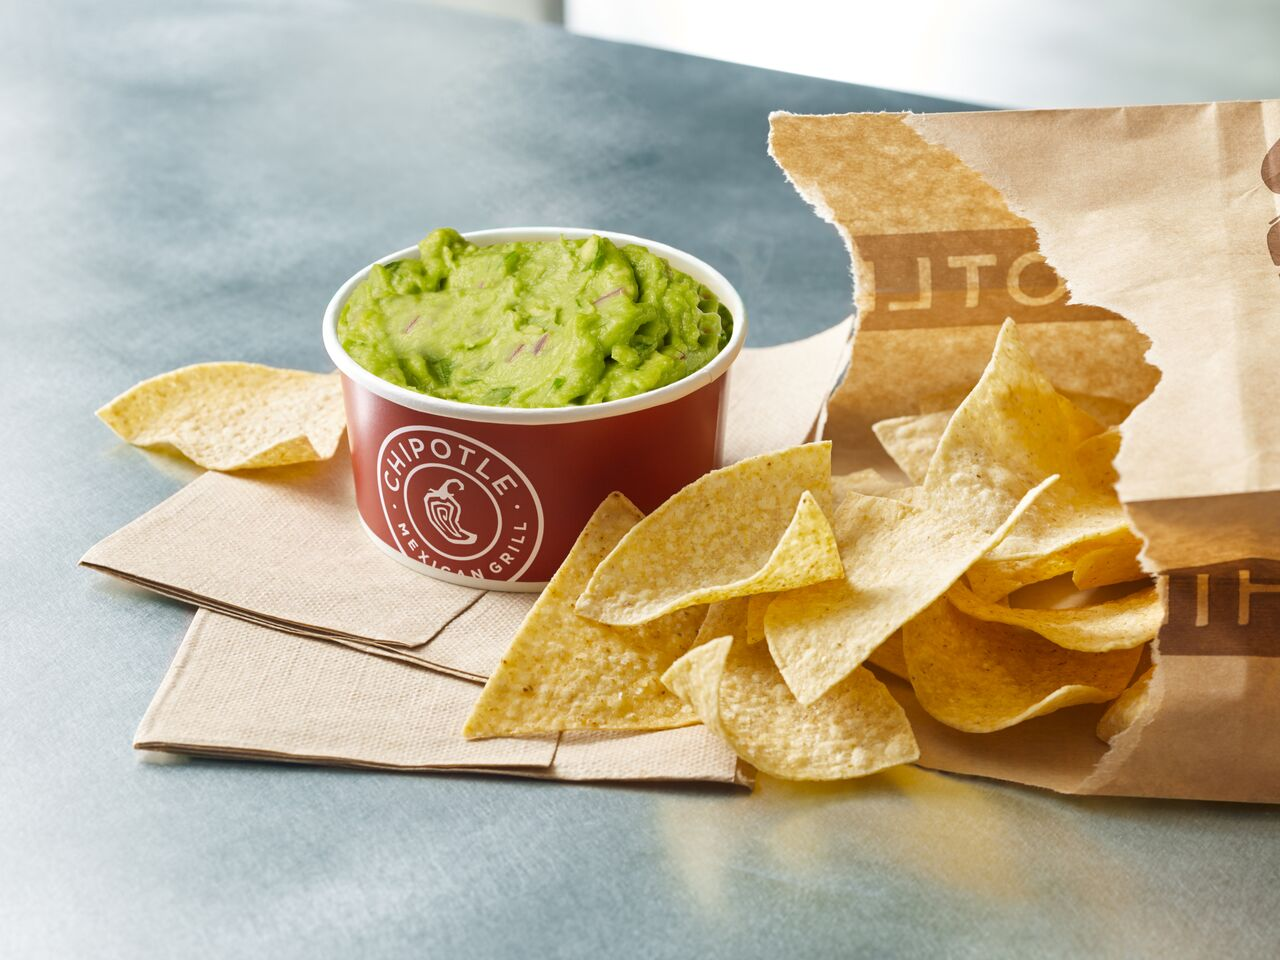 Guac fans, rejoice! Chipotle is now selling large sides of guacamole